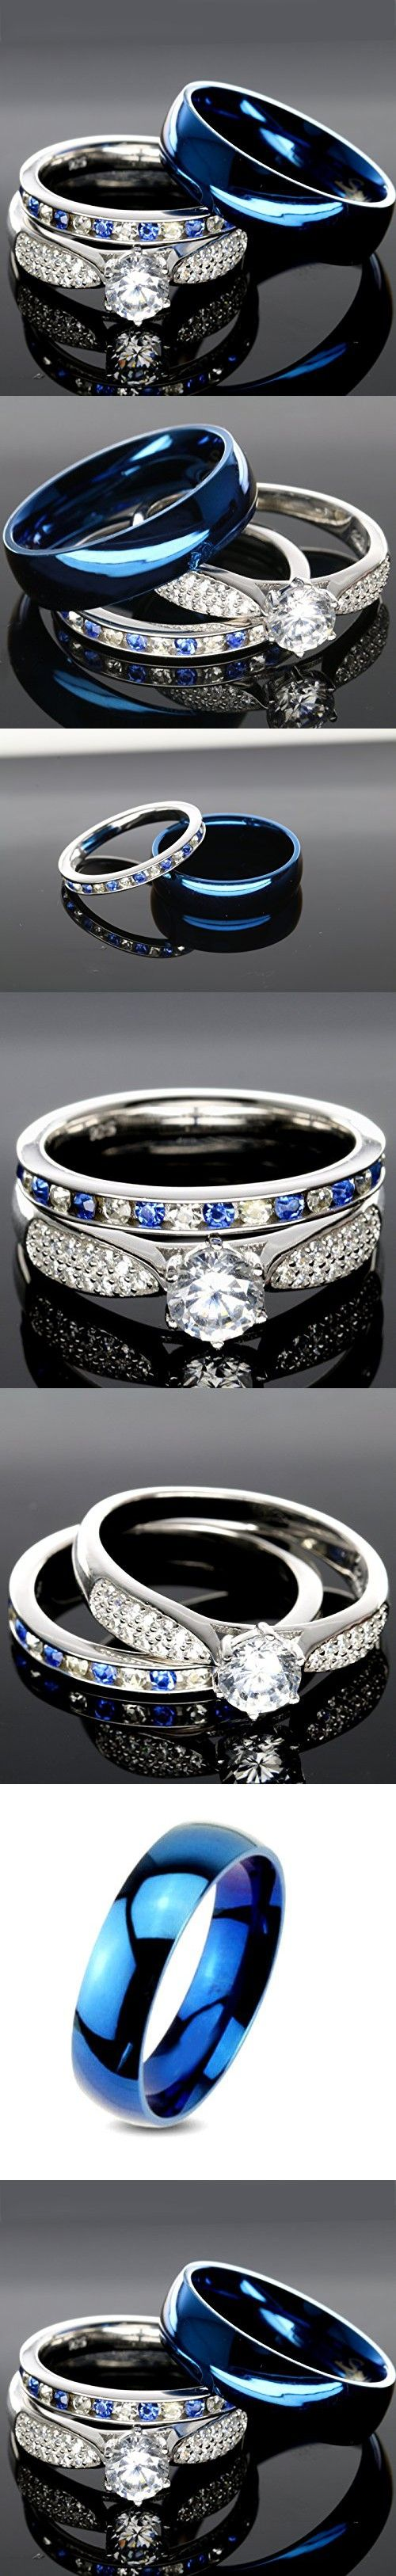 wedding az products stainless couple rings cz silver for diamond bands beydodo unisexs steel engraved personalized